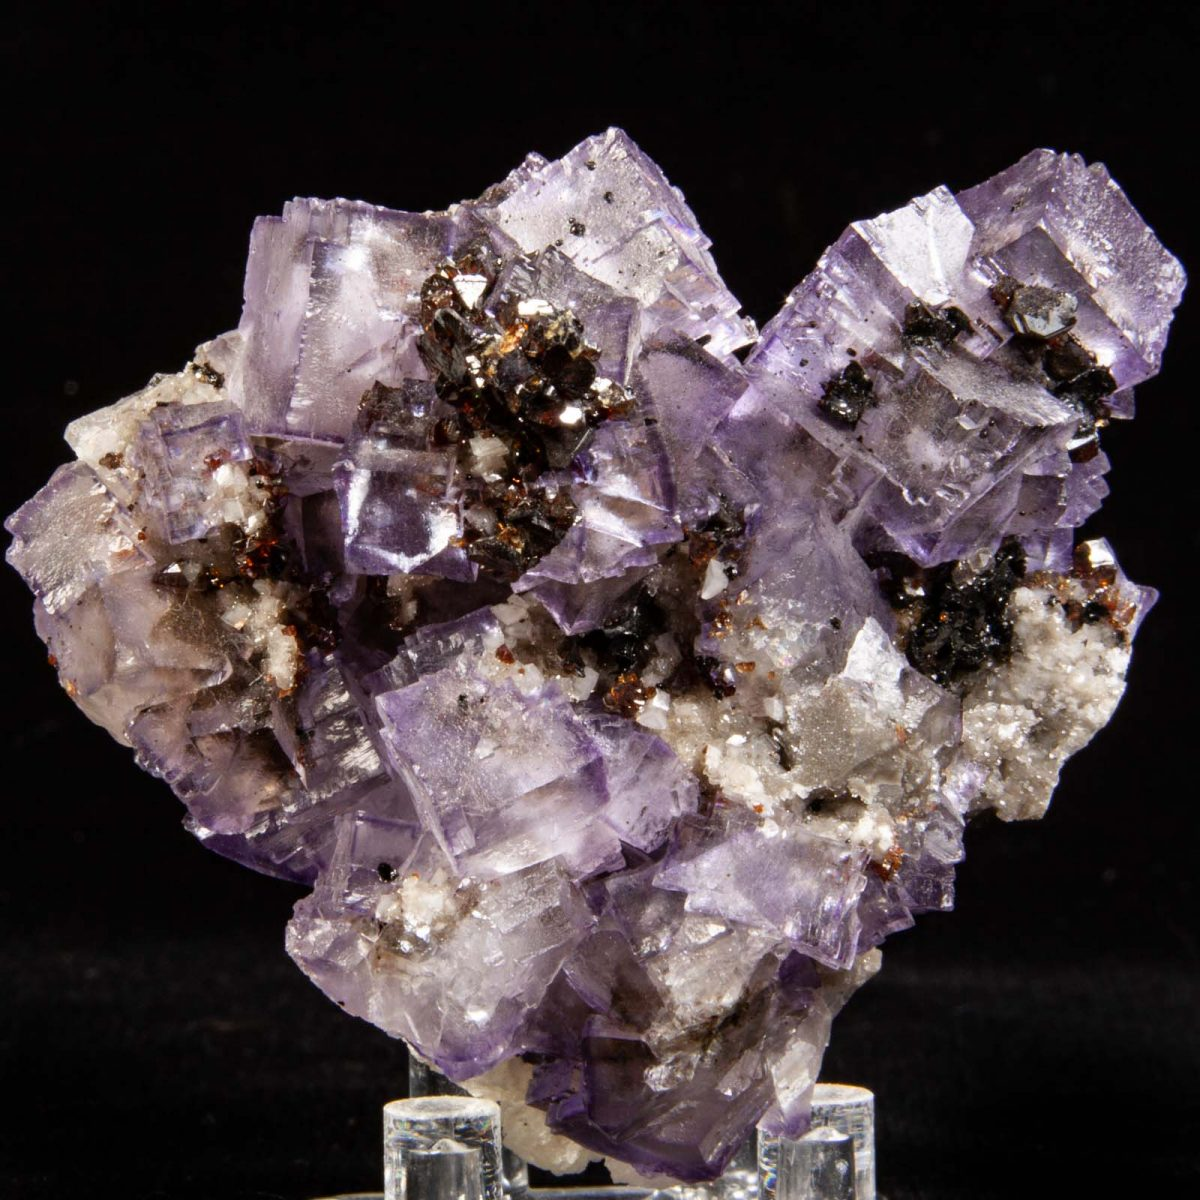 Fluorite with Sphalerite and Barite